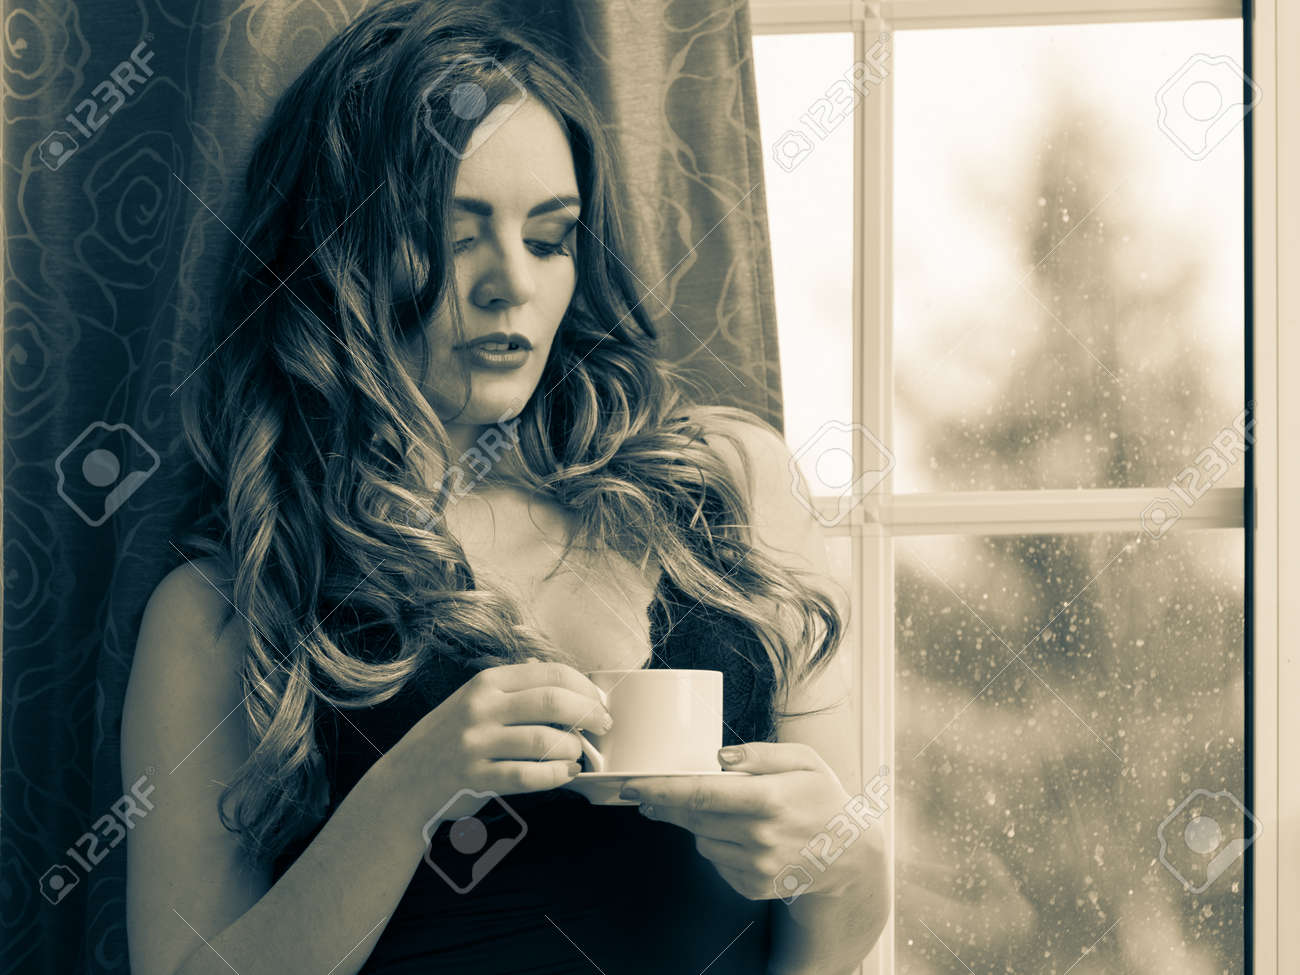 d6fdcbe2f352 Sensual seductive woman in lingerie drinking cup of coffee by curtain and  french door window at